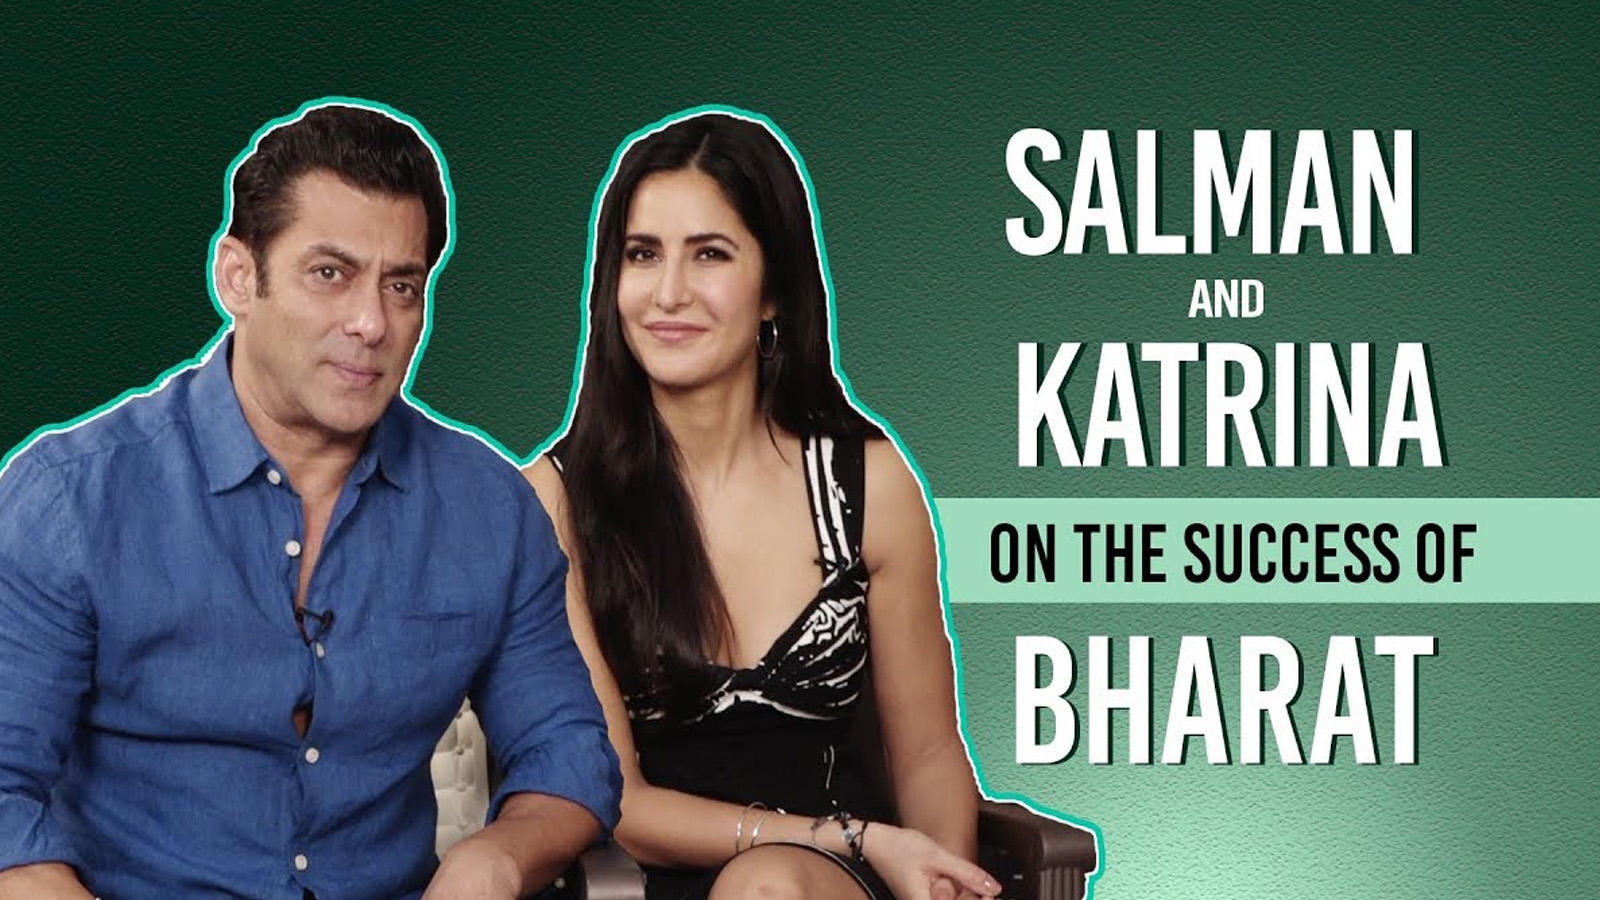 Salman Khan and Katrina Kaif's exclusive interview on the success of the film